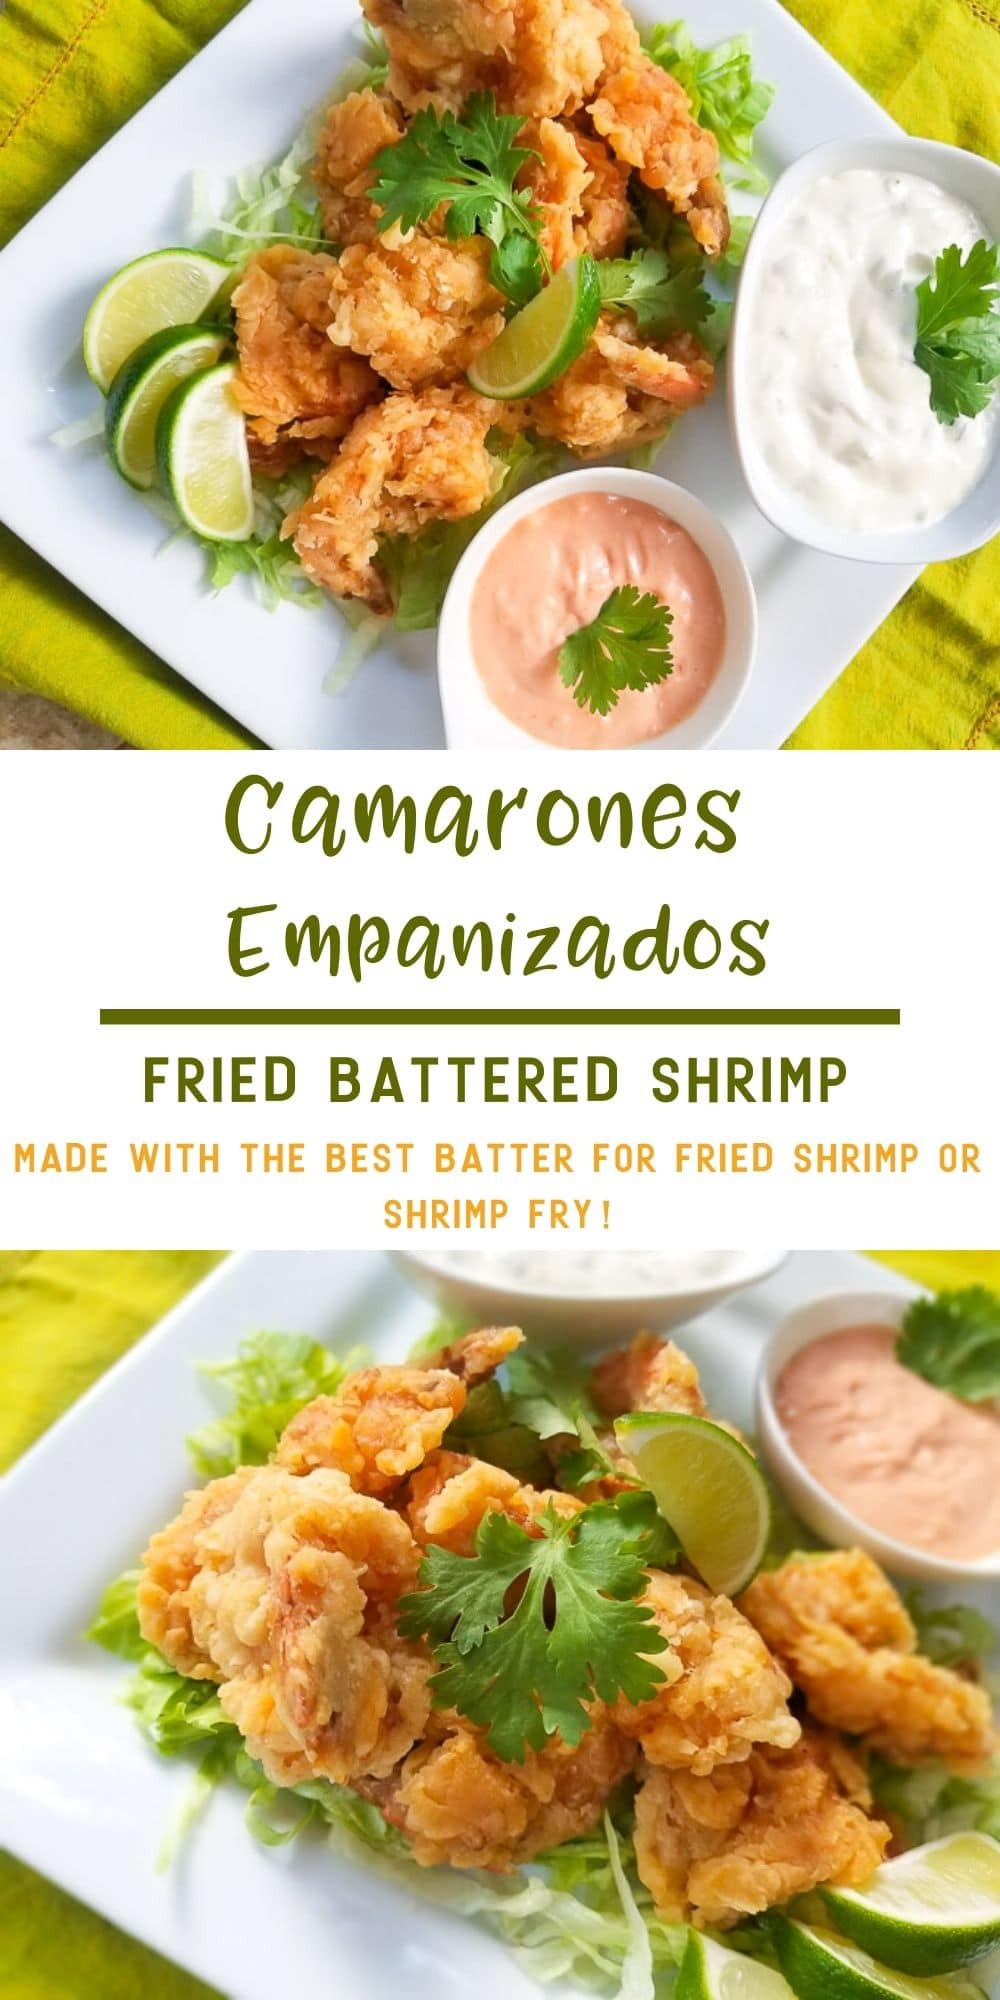 These Camarones Empanizados (Battered Shrimp) are hyper delicious.  Perfectly crispy on the outside and tender on the inside.  This batter will be one of the best batters you will come across for the most perfect crispy succulent tender shrimp fry!  This dish is perfect as an appetizer or served as a meal with a side of fries or salad. #camaronesempanizados #friedbatteredshrimp #camaronesfritos #breadedshrimp #batteredshrimps #shrimprecipes #camarones #recetasdecamarones#puertoricanrecipes